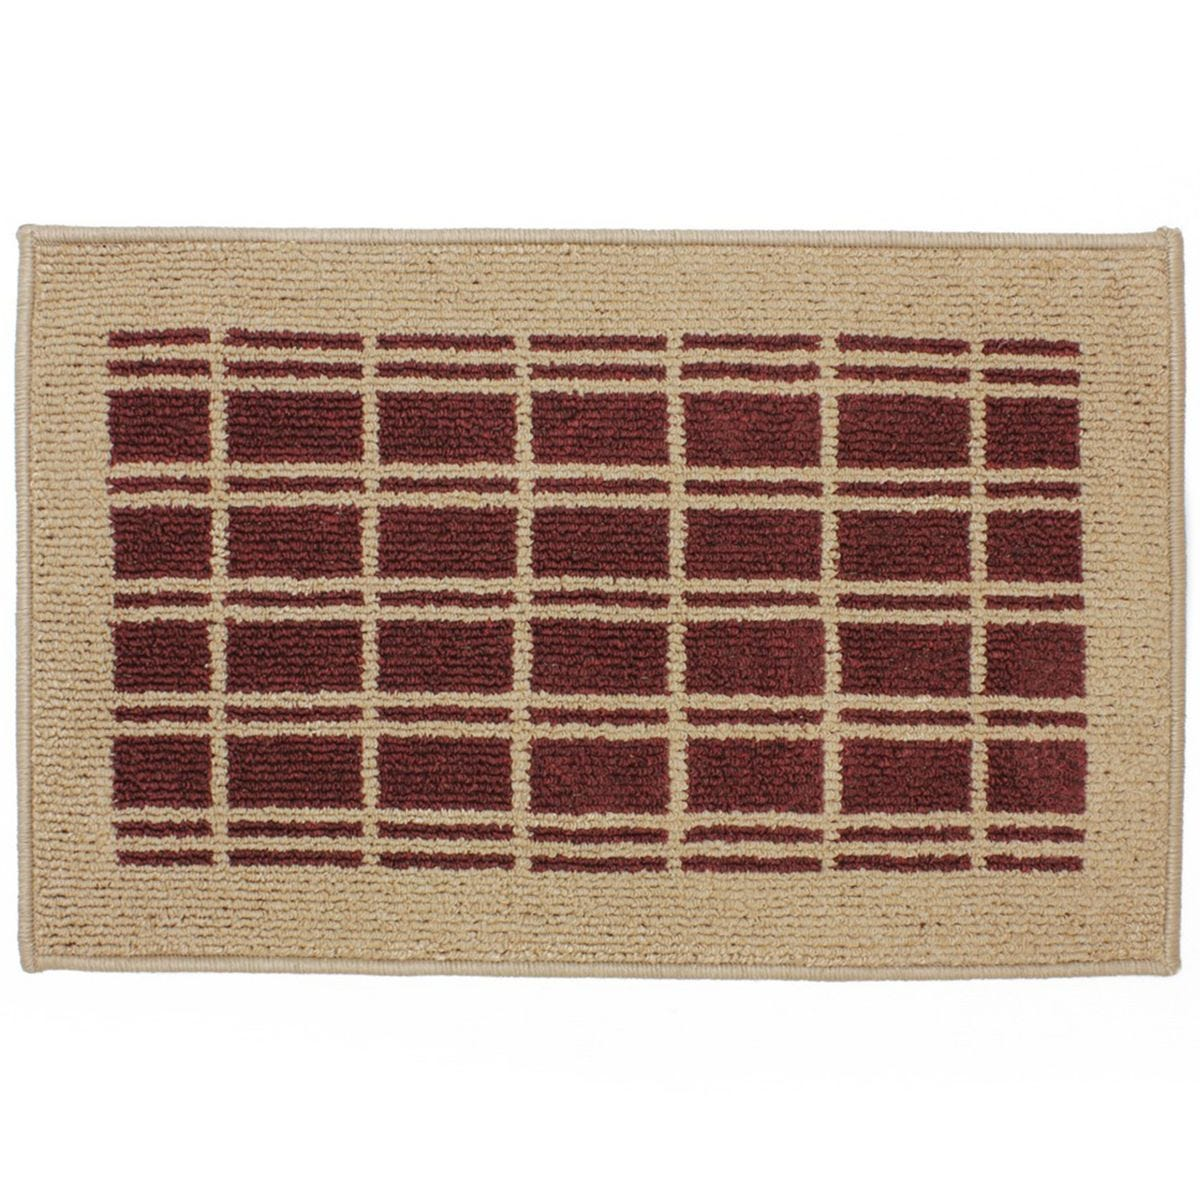 JVL 50 x 80cm Treviso Latex Backed Door Mat - Beige/Red